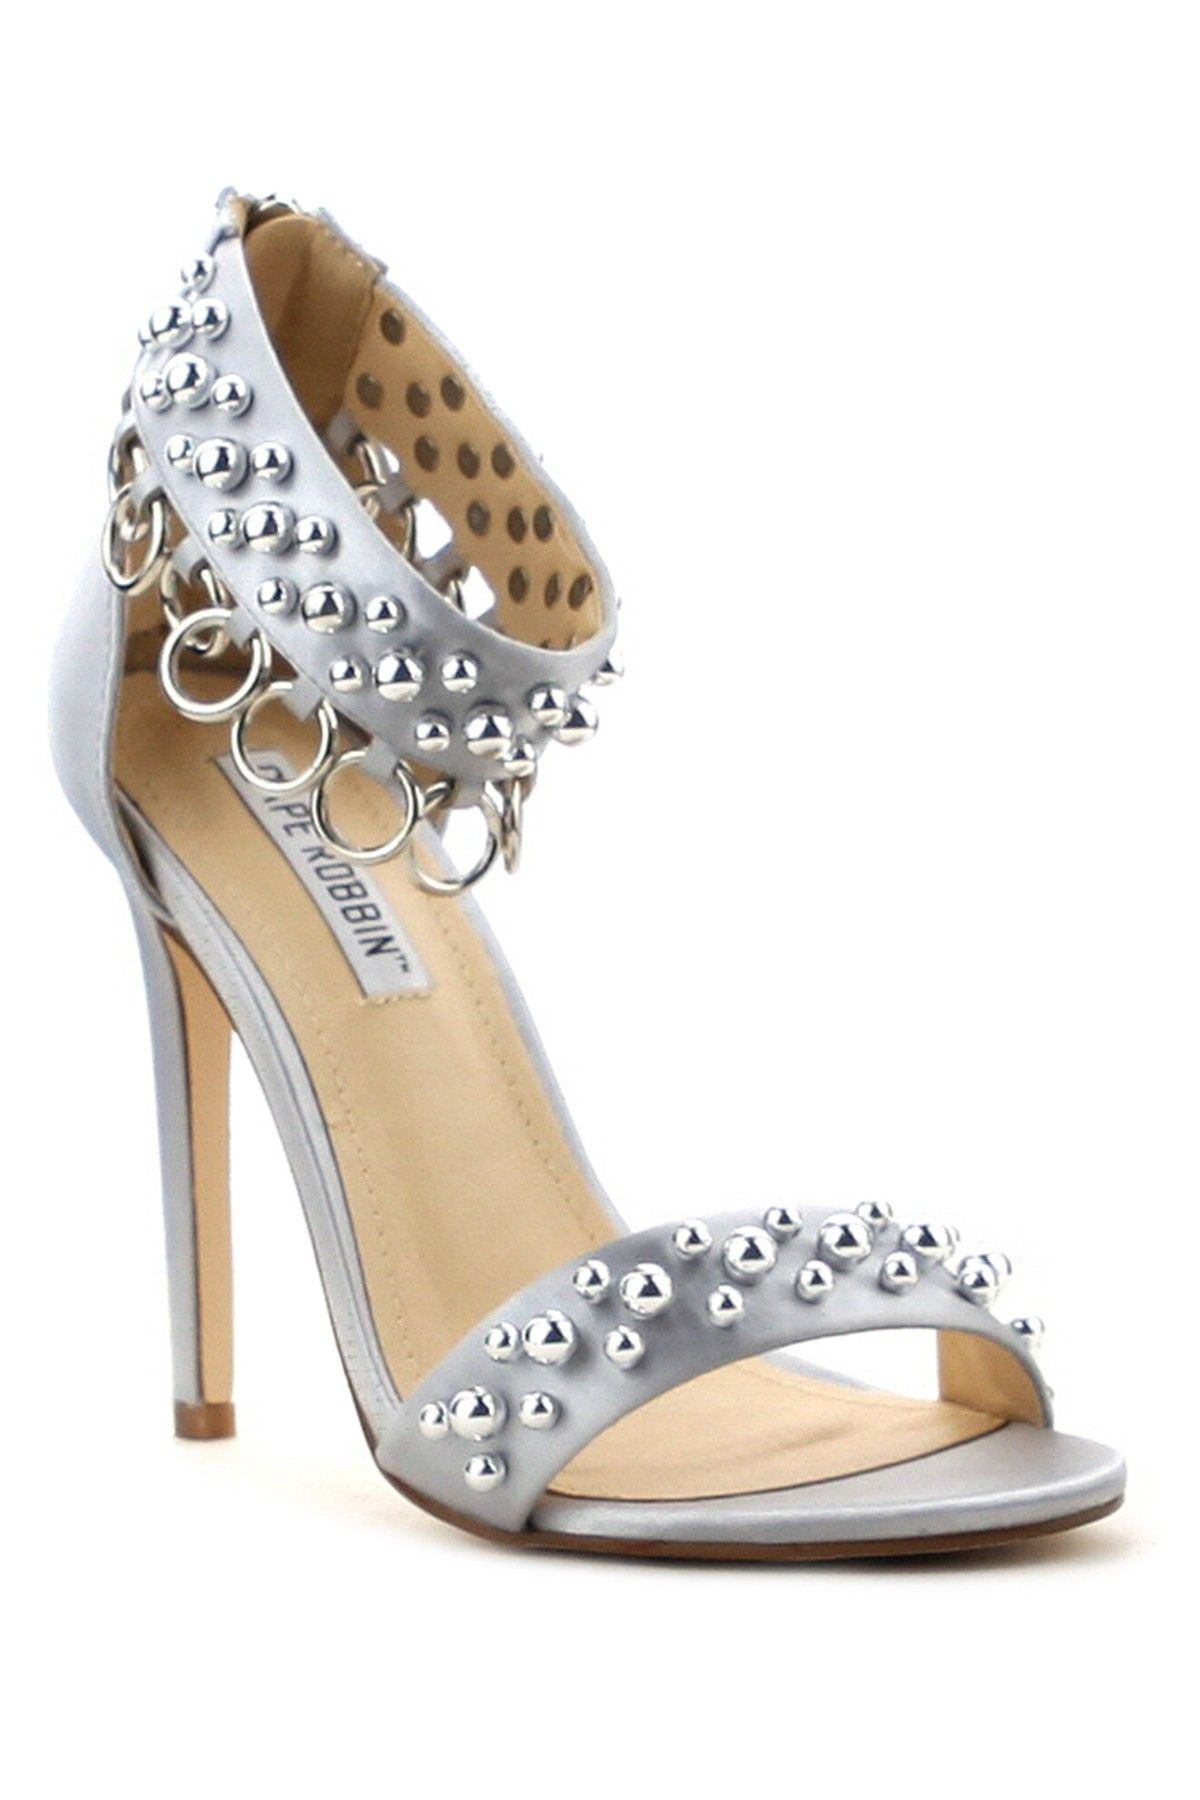 361d28b14b33c Cape Robbin Suzzy Ankle Strap Beaded Heel